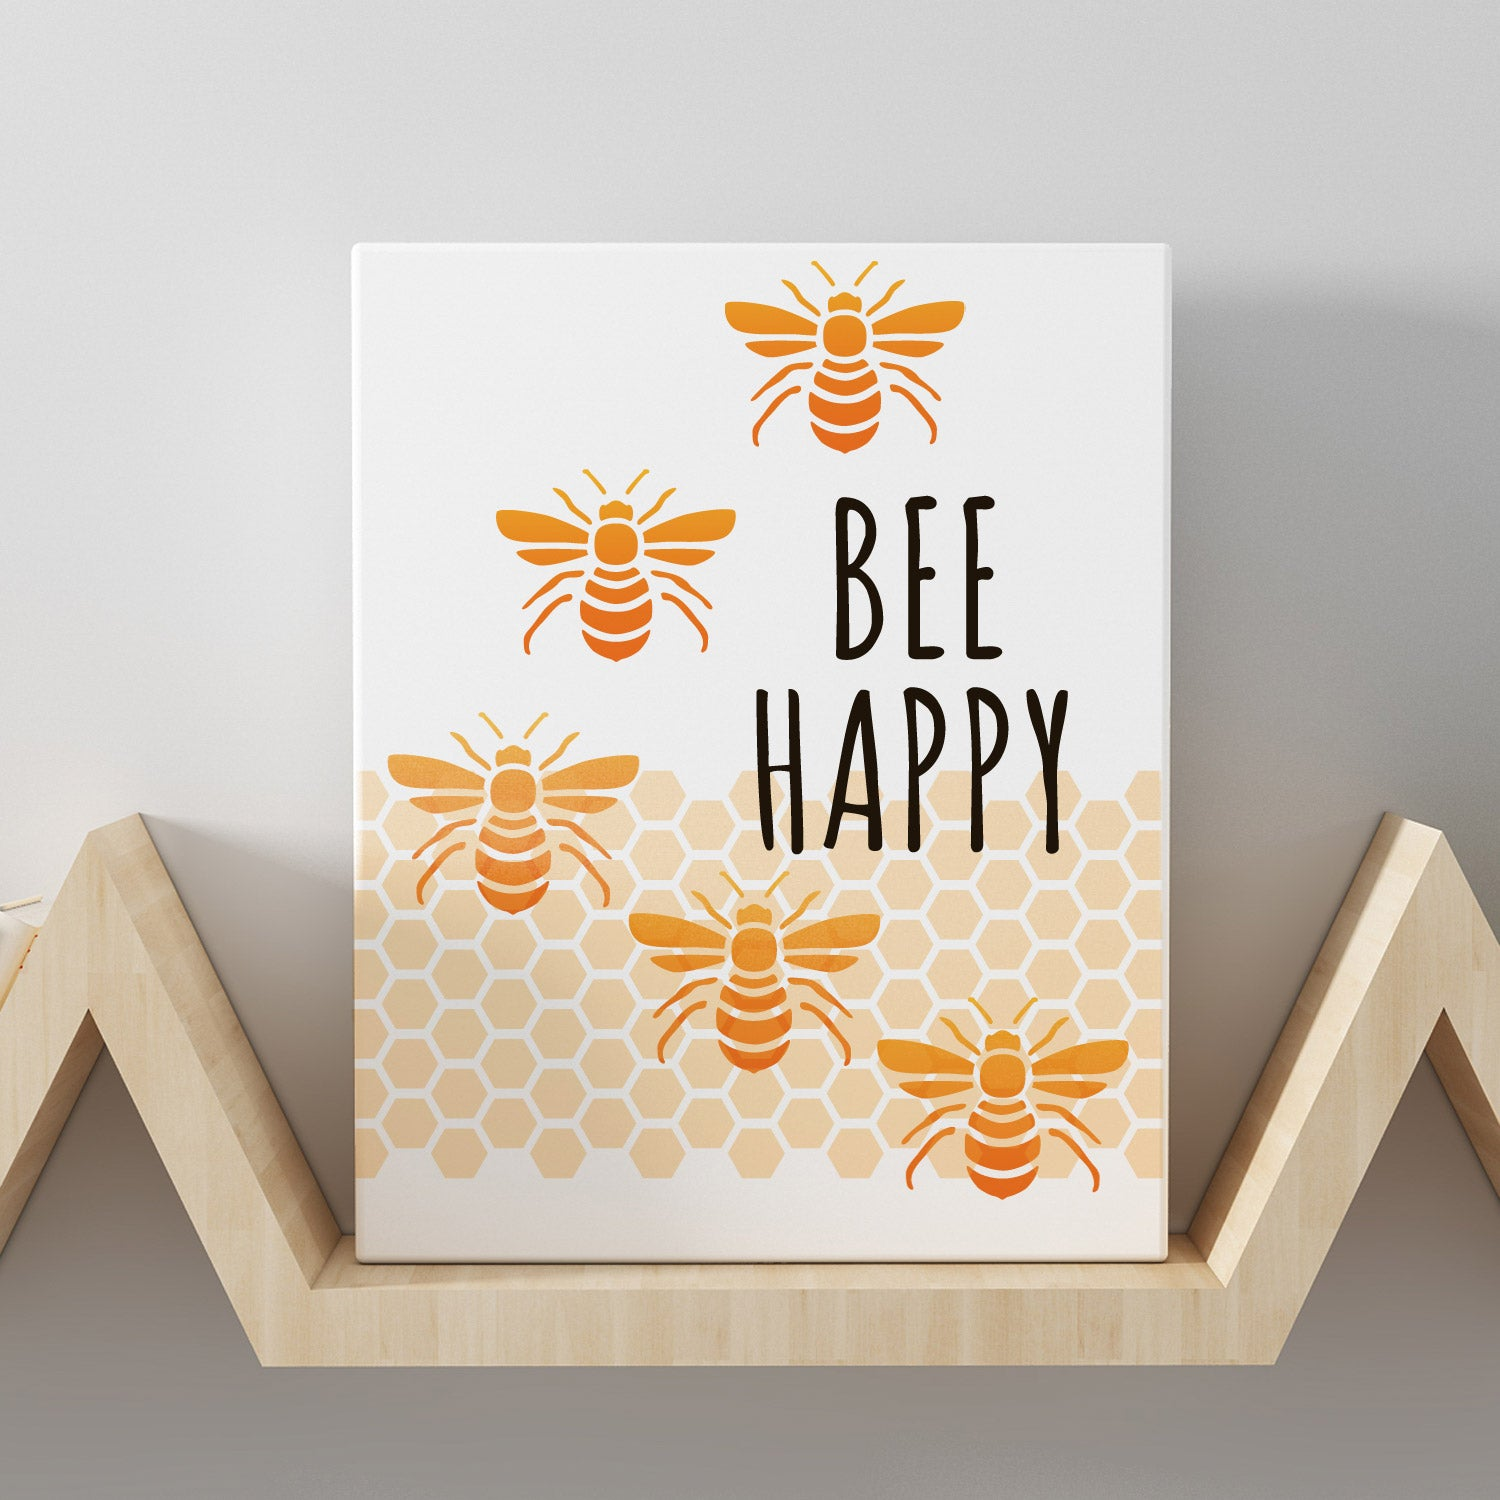 CraftStar Bee and Honeycomb Stencil Set on Canvas Print